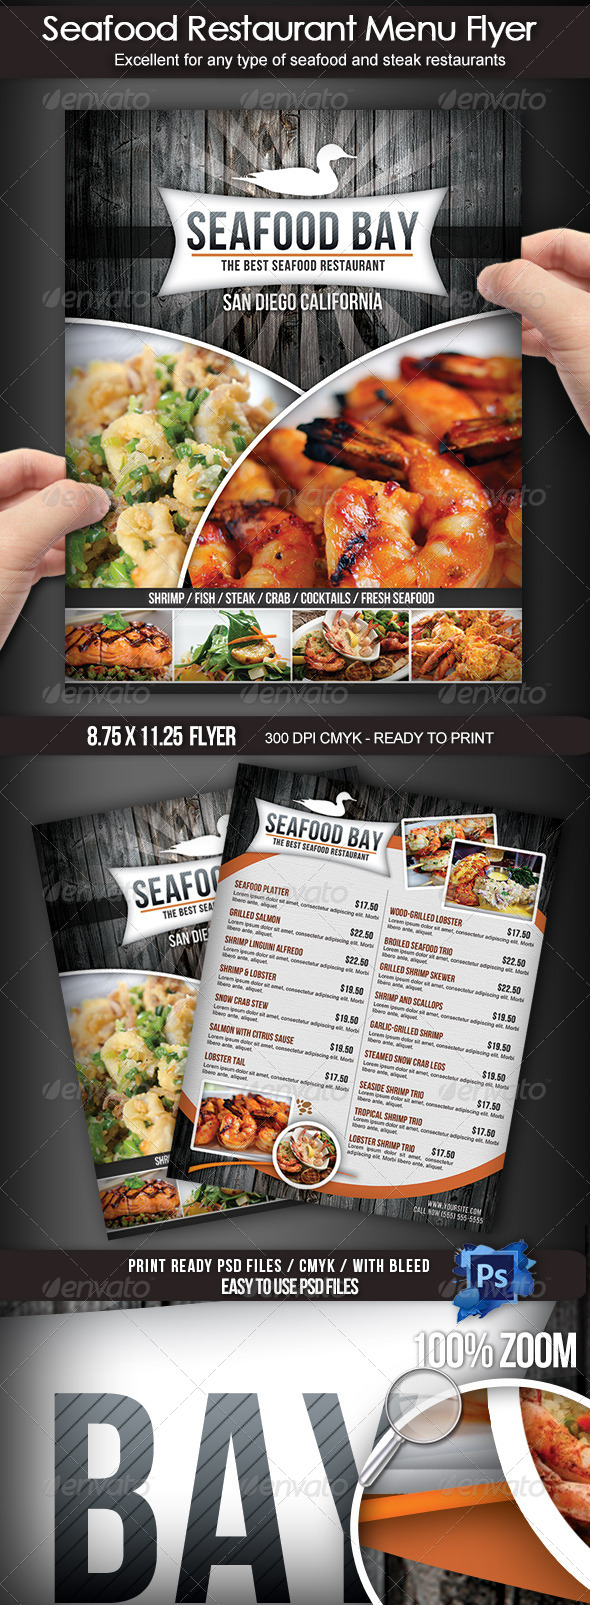 GraphicRiver Seafood Restaurant Menu Flyer 4217372